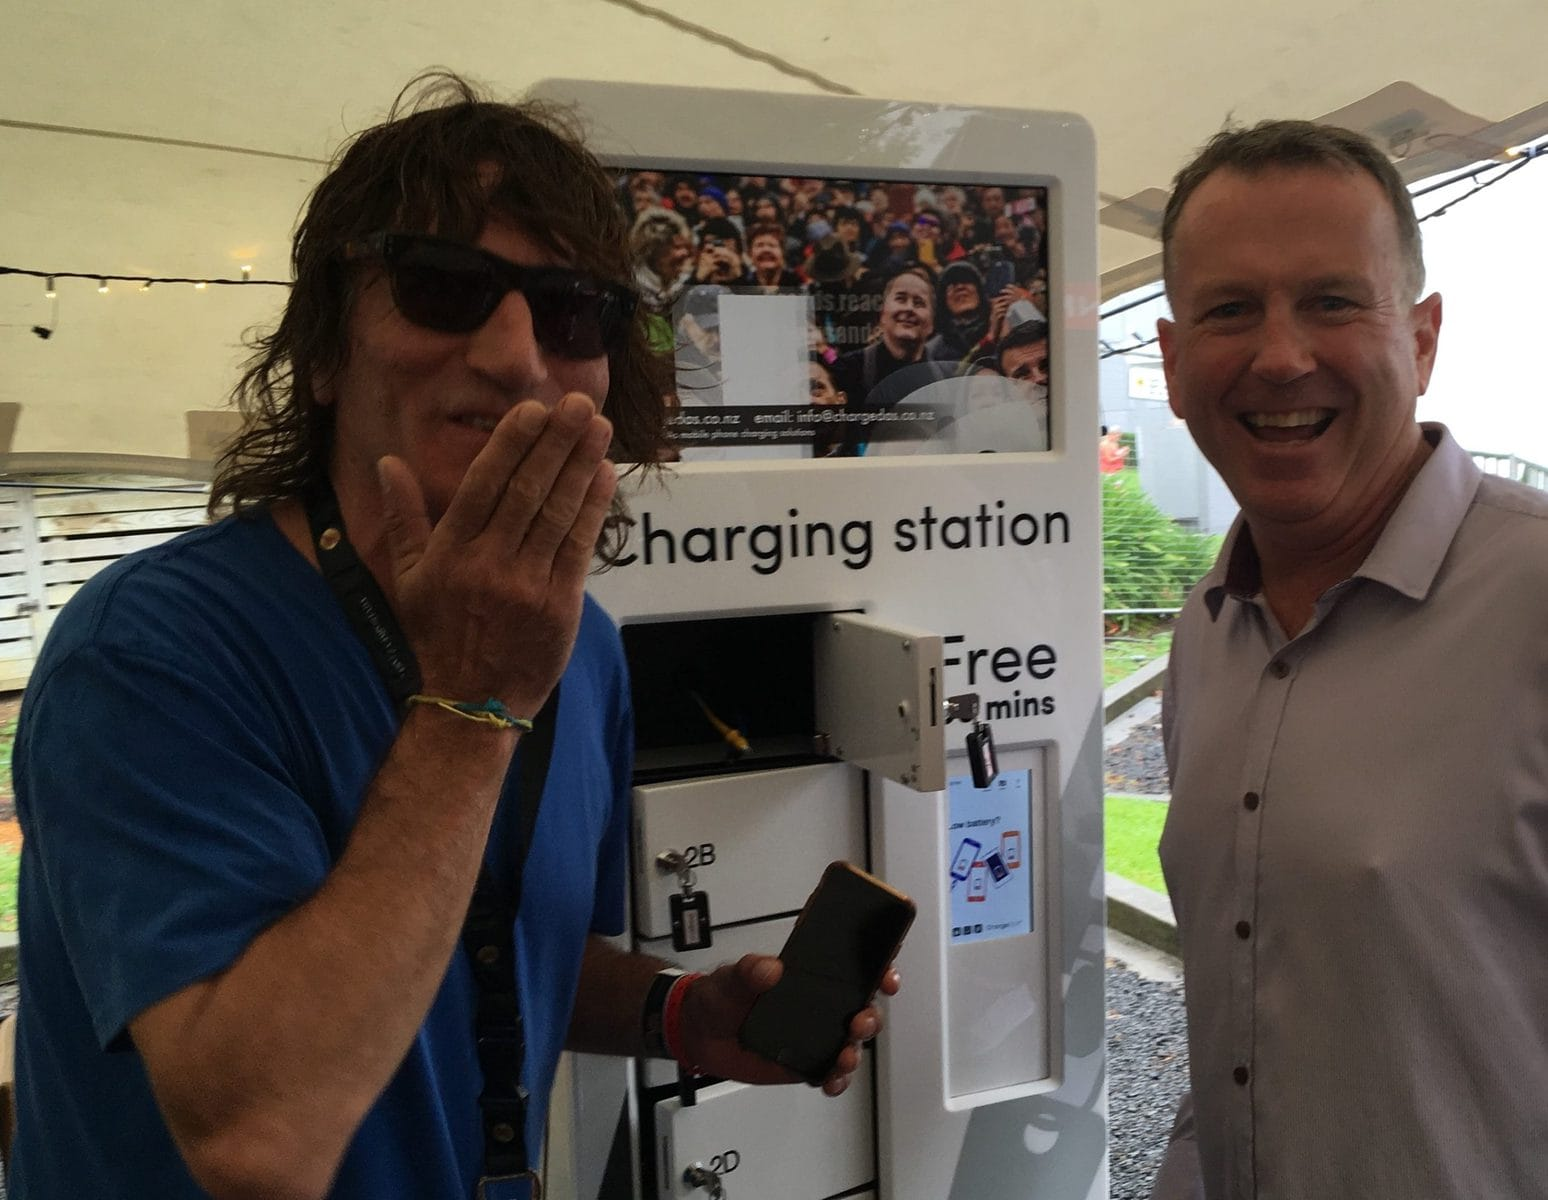 ChargedAs' charging stations help prevent early exits from events